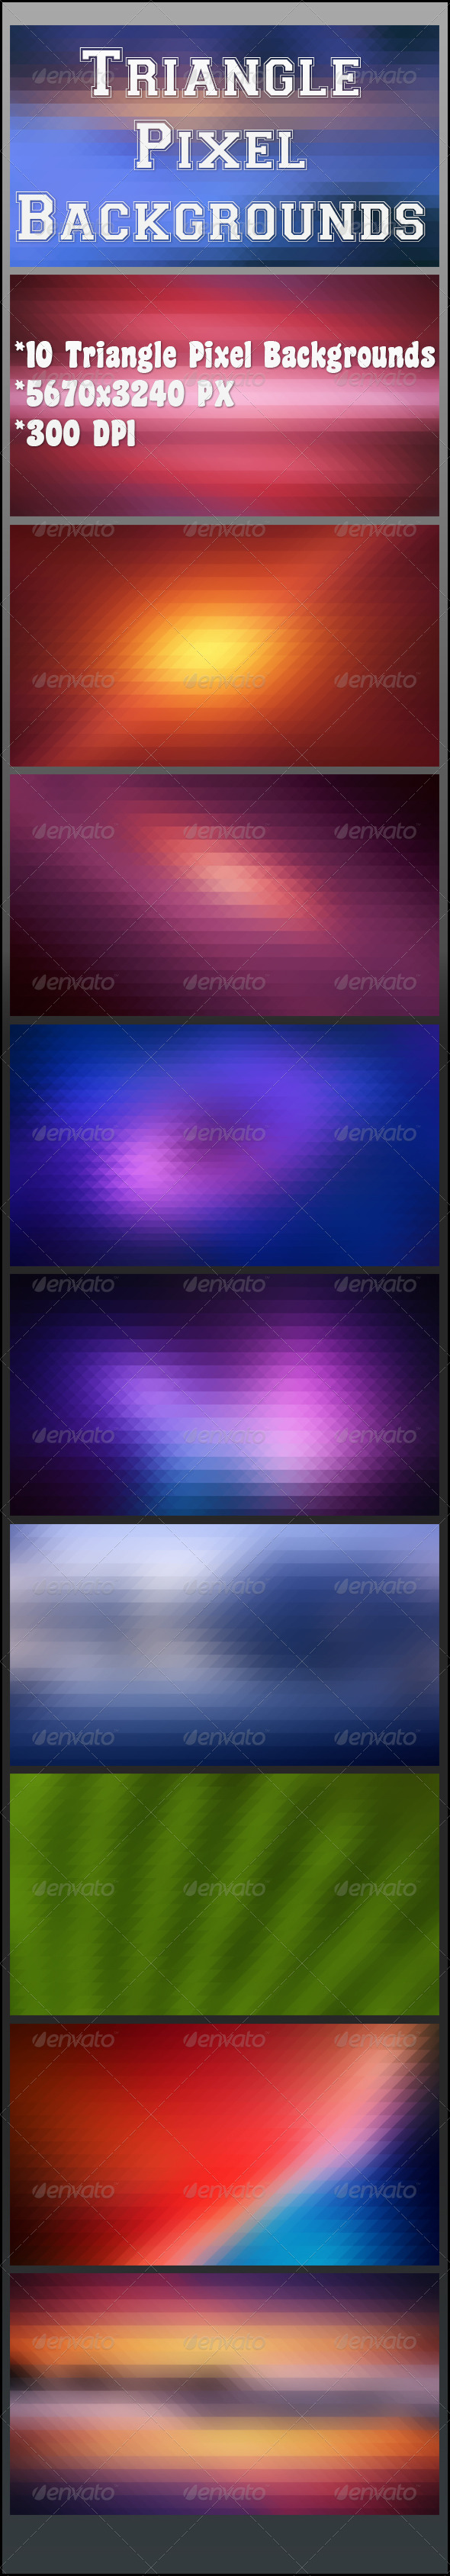 GraphicRiver Triangle Pixel Backgrounds 8351605